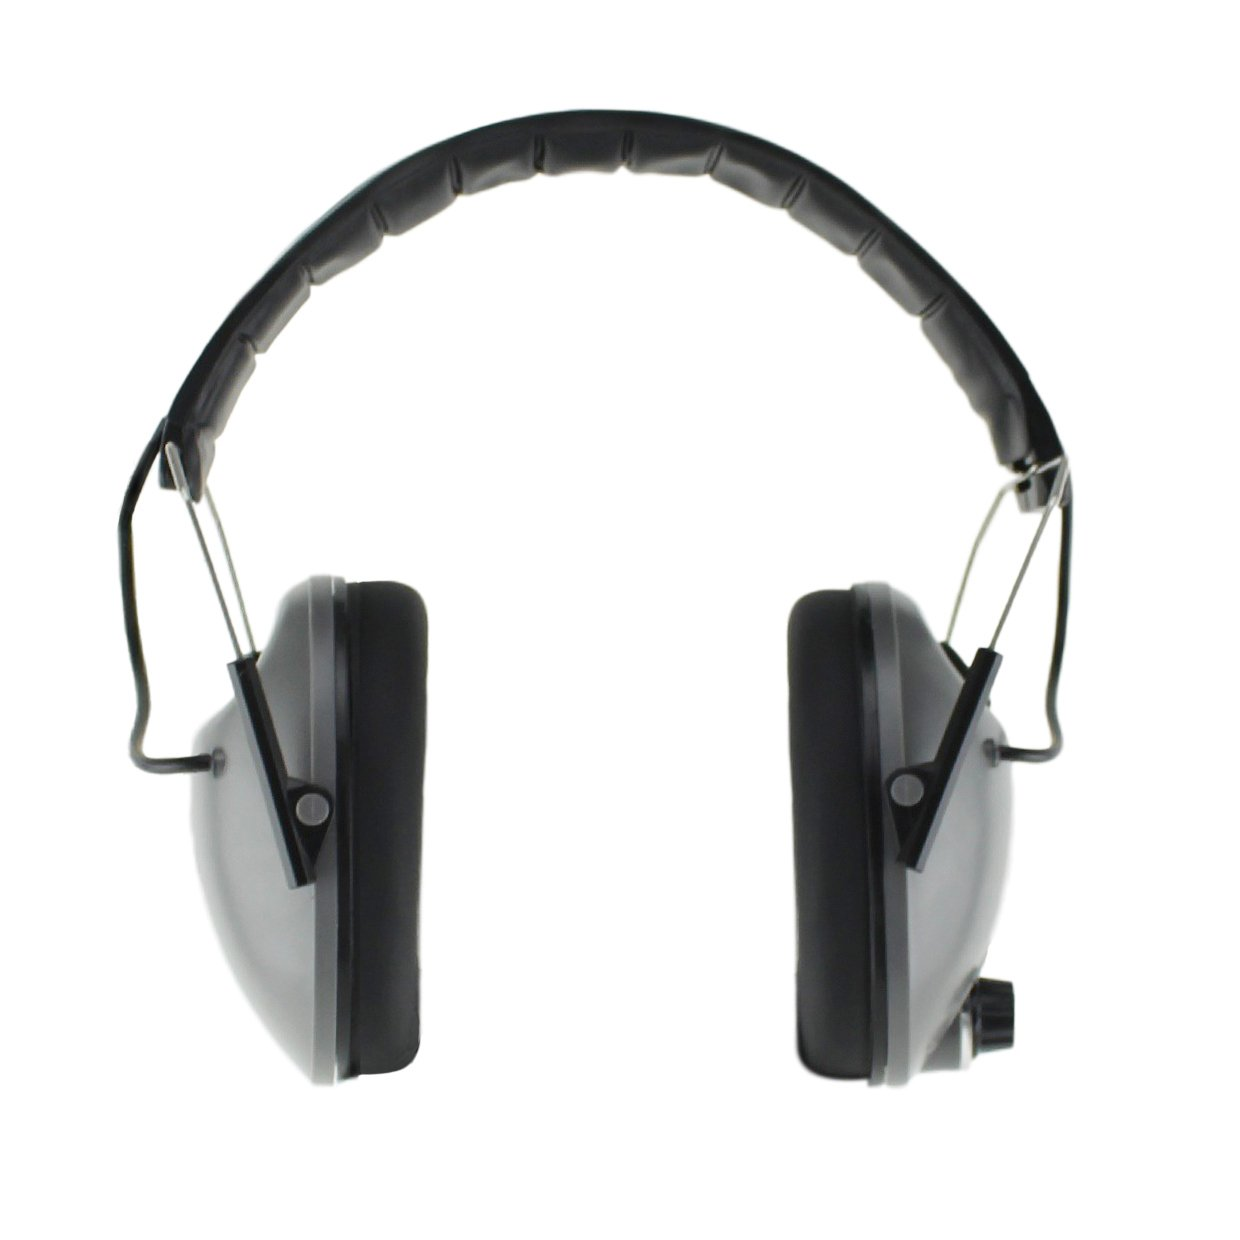 Titus E-Series - Low-Profile - Electronic Noise Cancelling Safety Earmuffs - Hearing Protection (Standard) by Titus (Image #5)